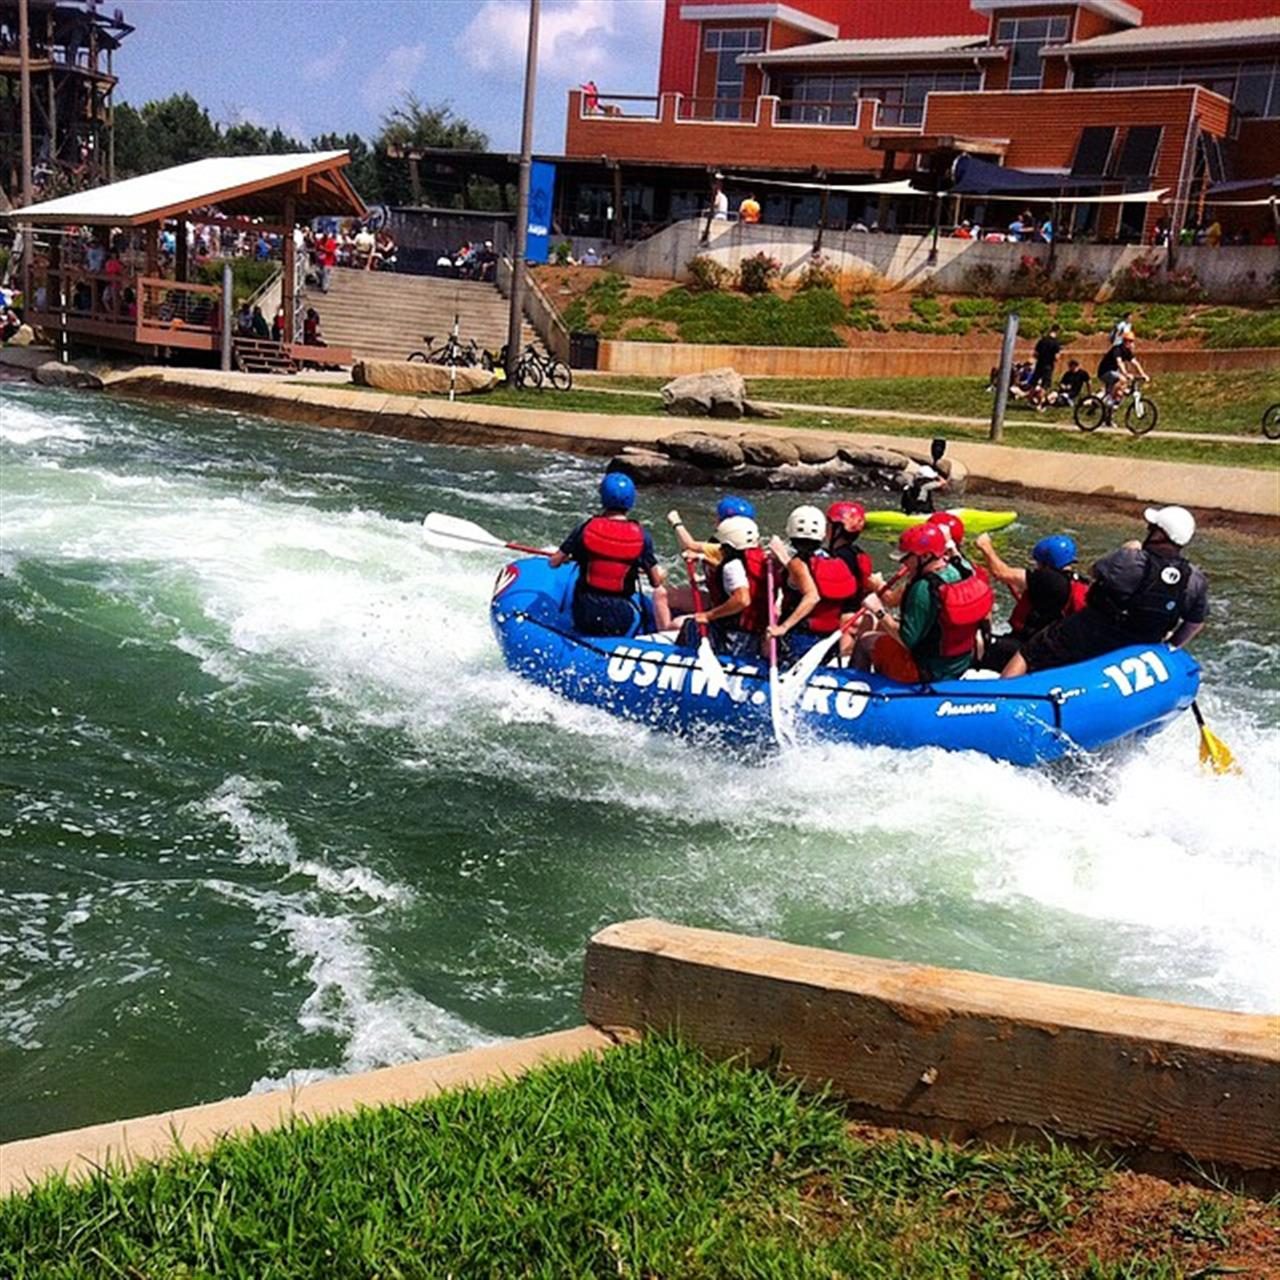 Beautiful day for rafting. #leadingrelocal #clt #nc